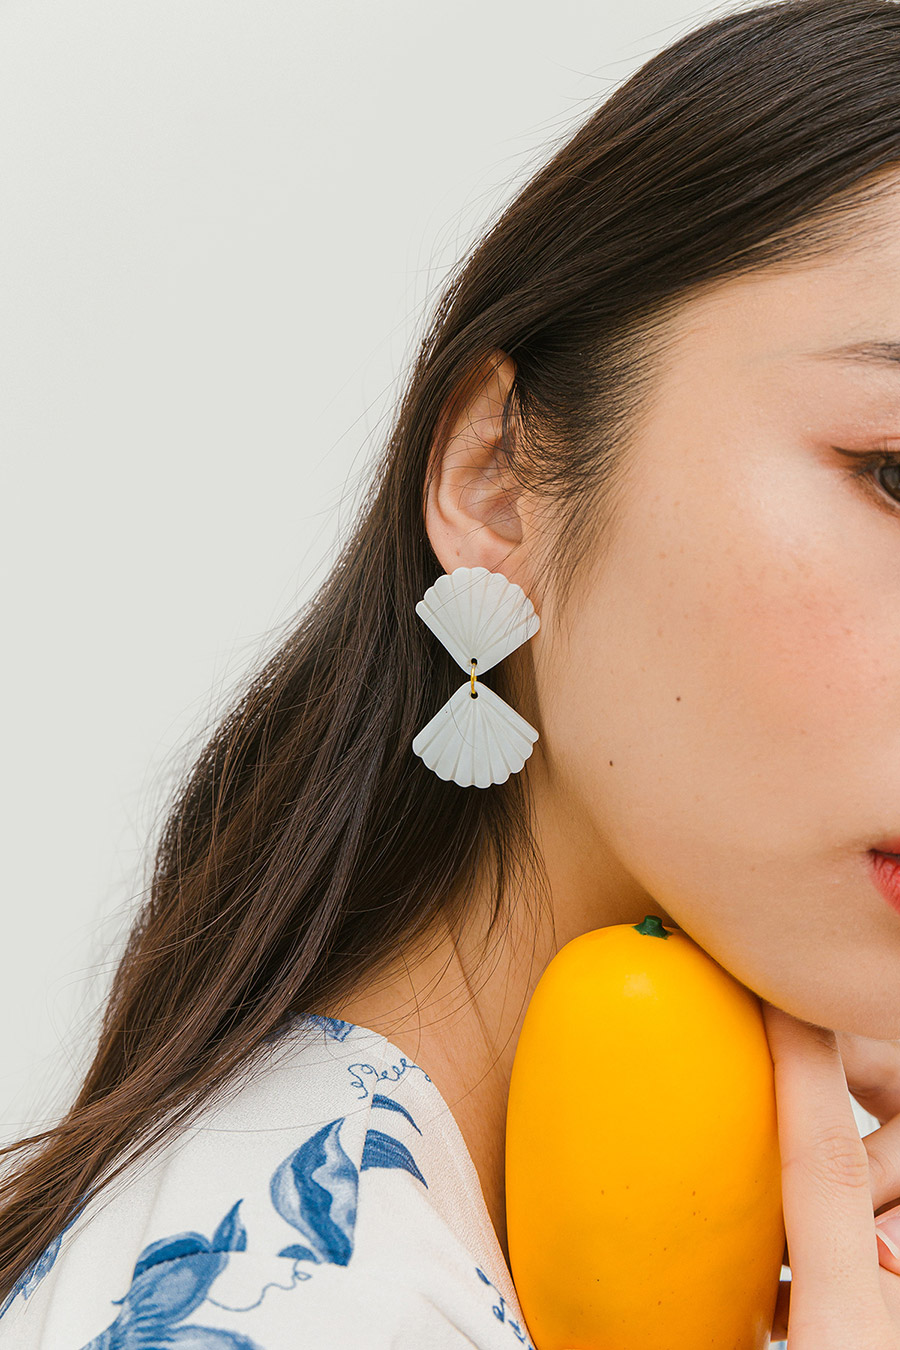 *BO* SEASHORE EARRING - SEASHELL [BY MODPARADE]